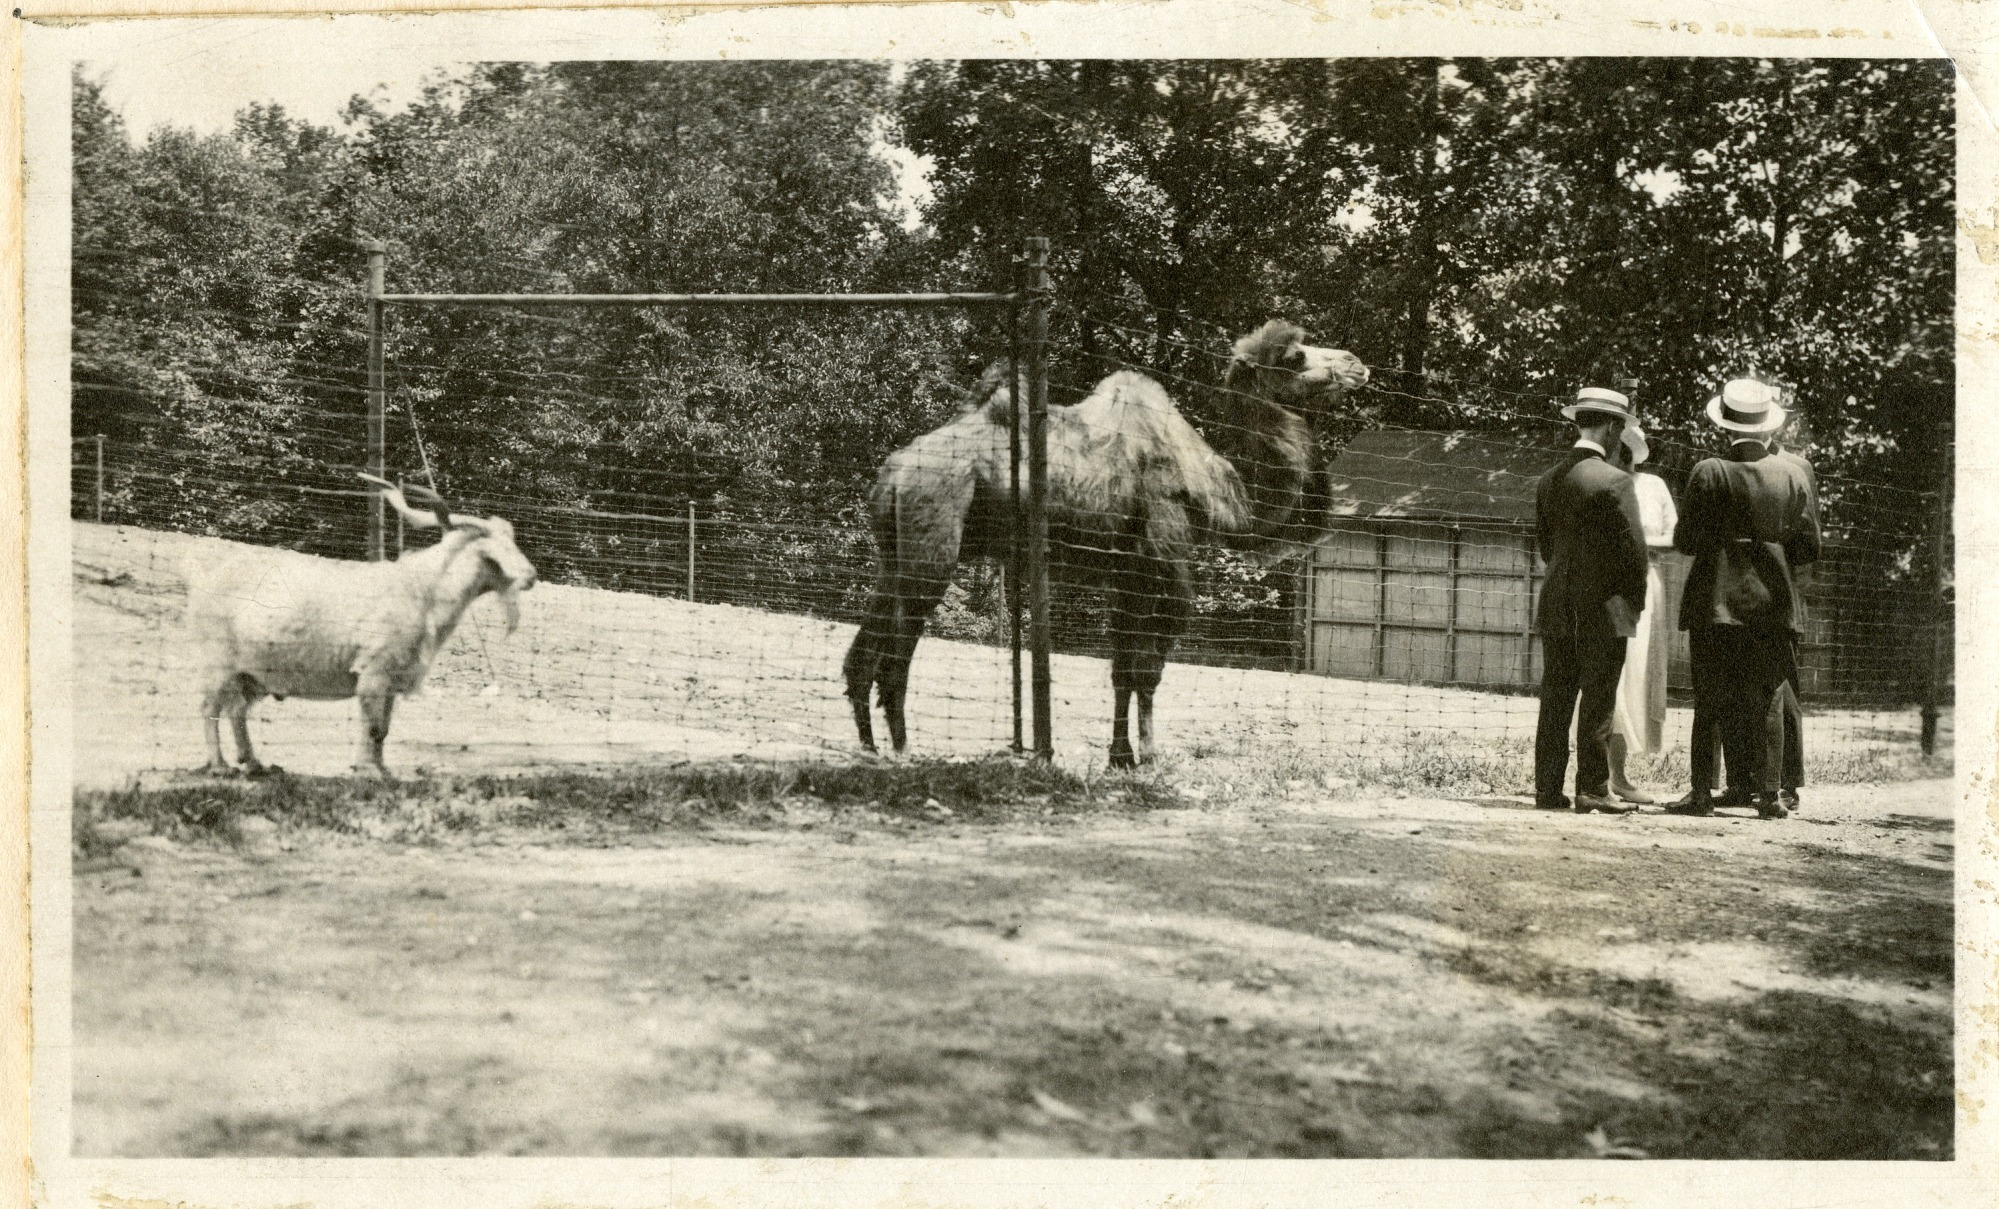 Views of the National Zoological Park in Washington, DC, showing Camel and Goat